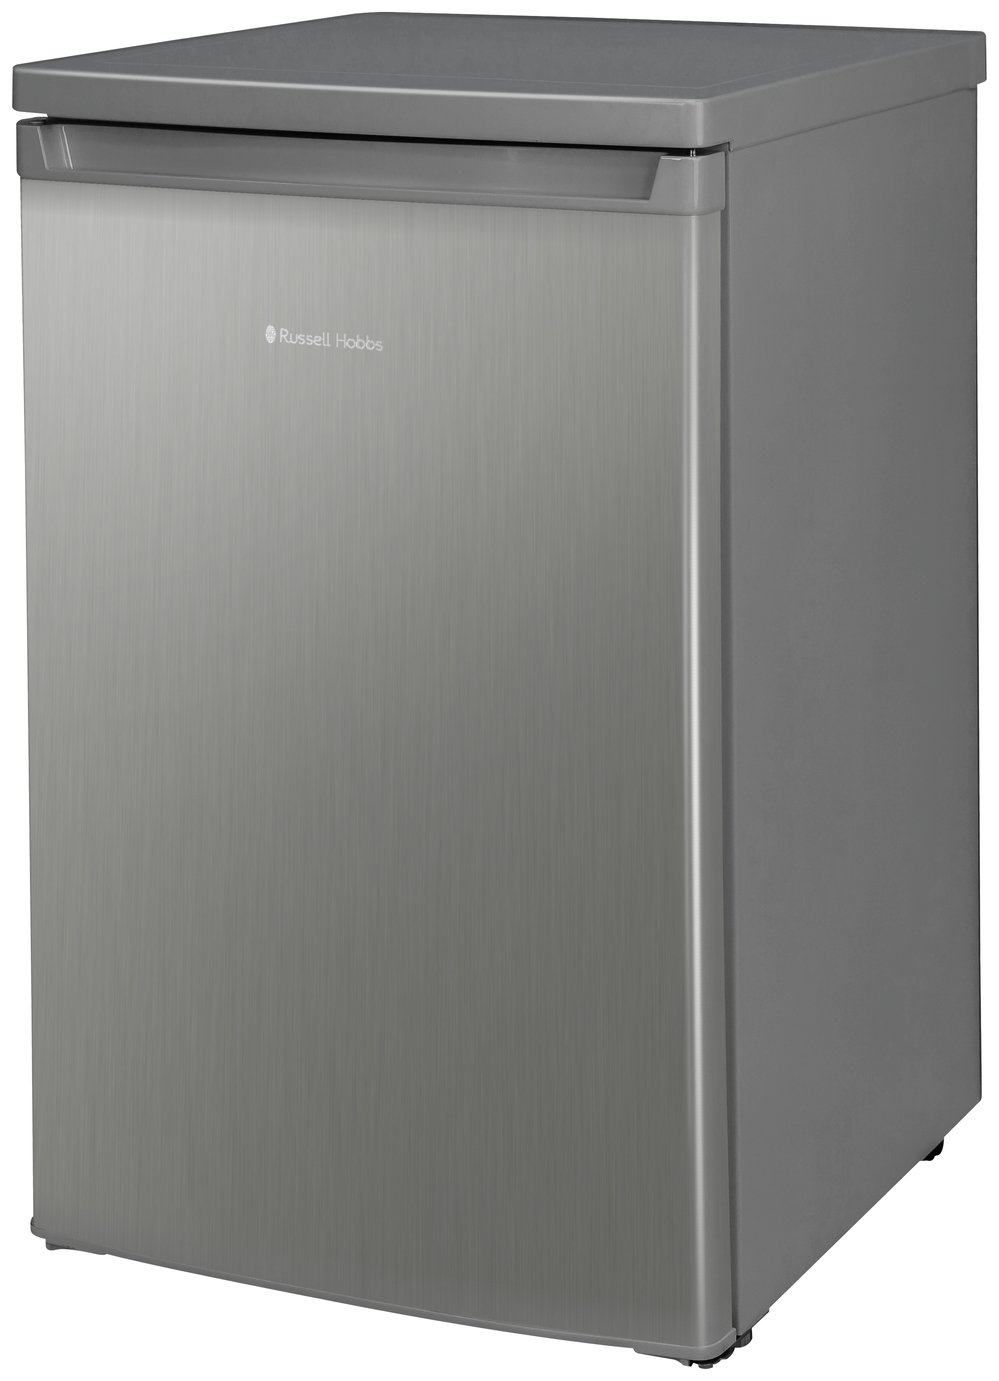 Image of Russell Hobbs RHUCF55SS Undercounter Fridge - S/ Steel